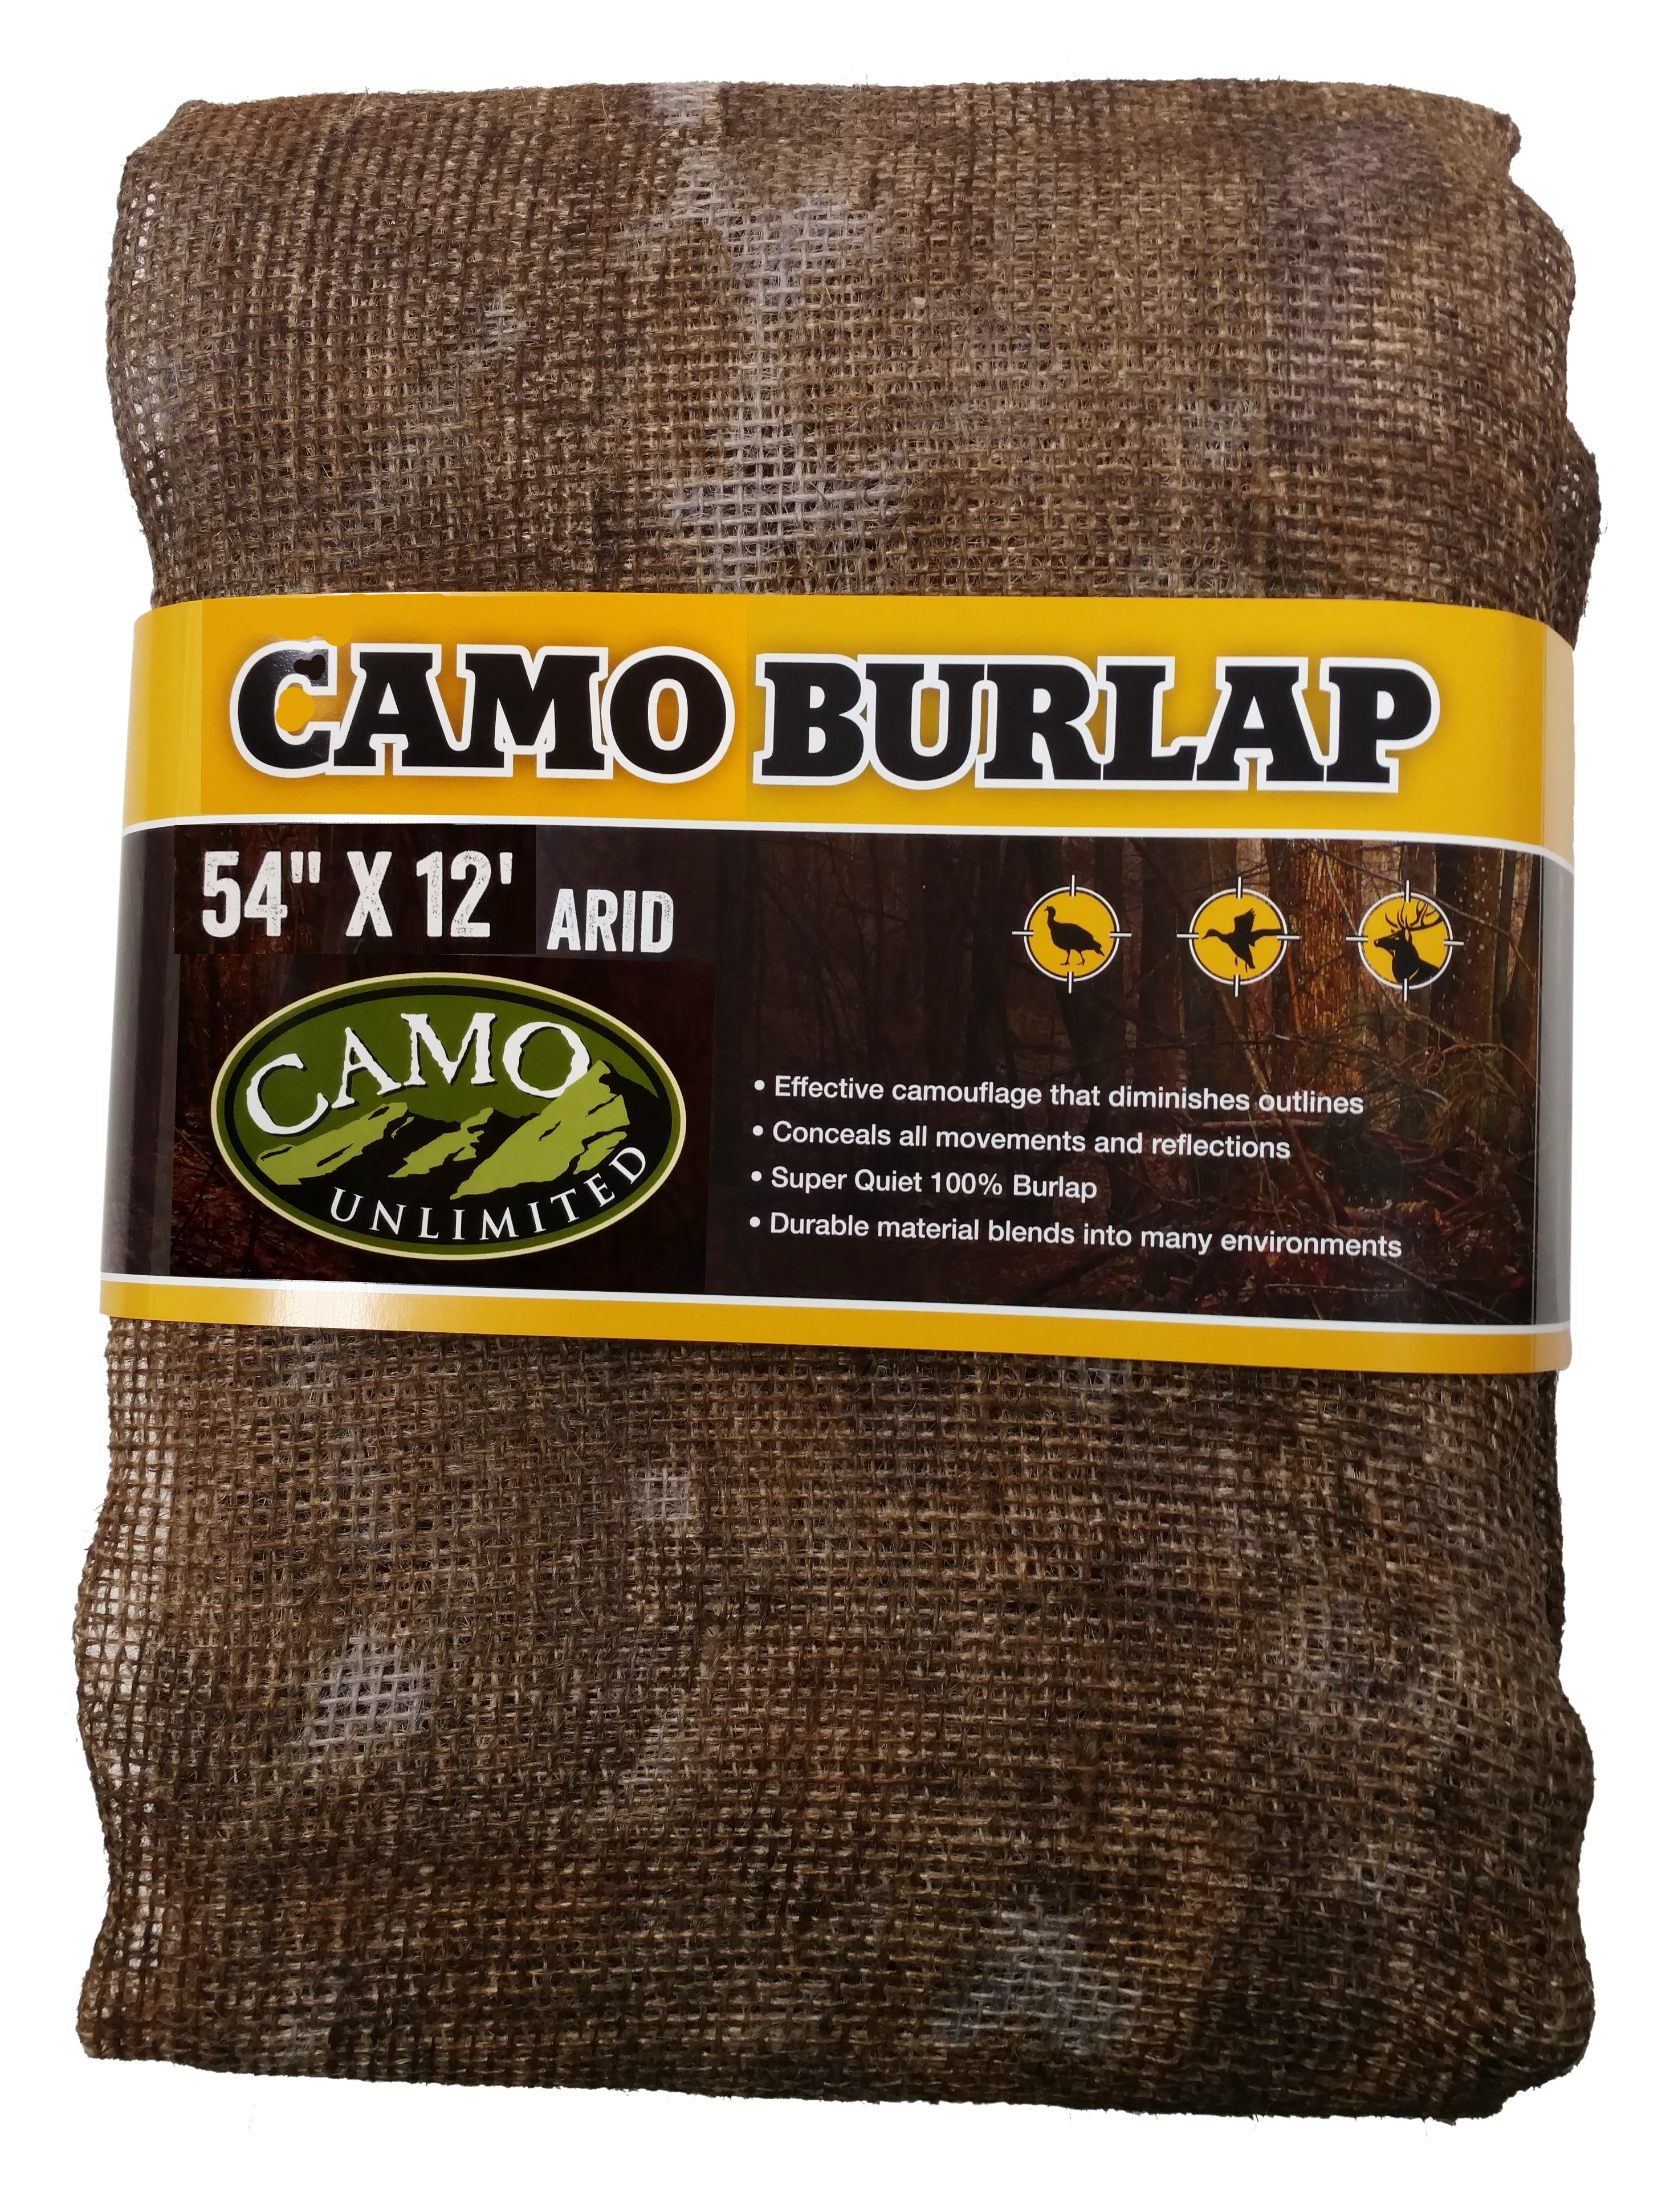 Camo Unlimited 9550 Camo Burlap